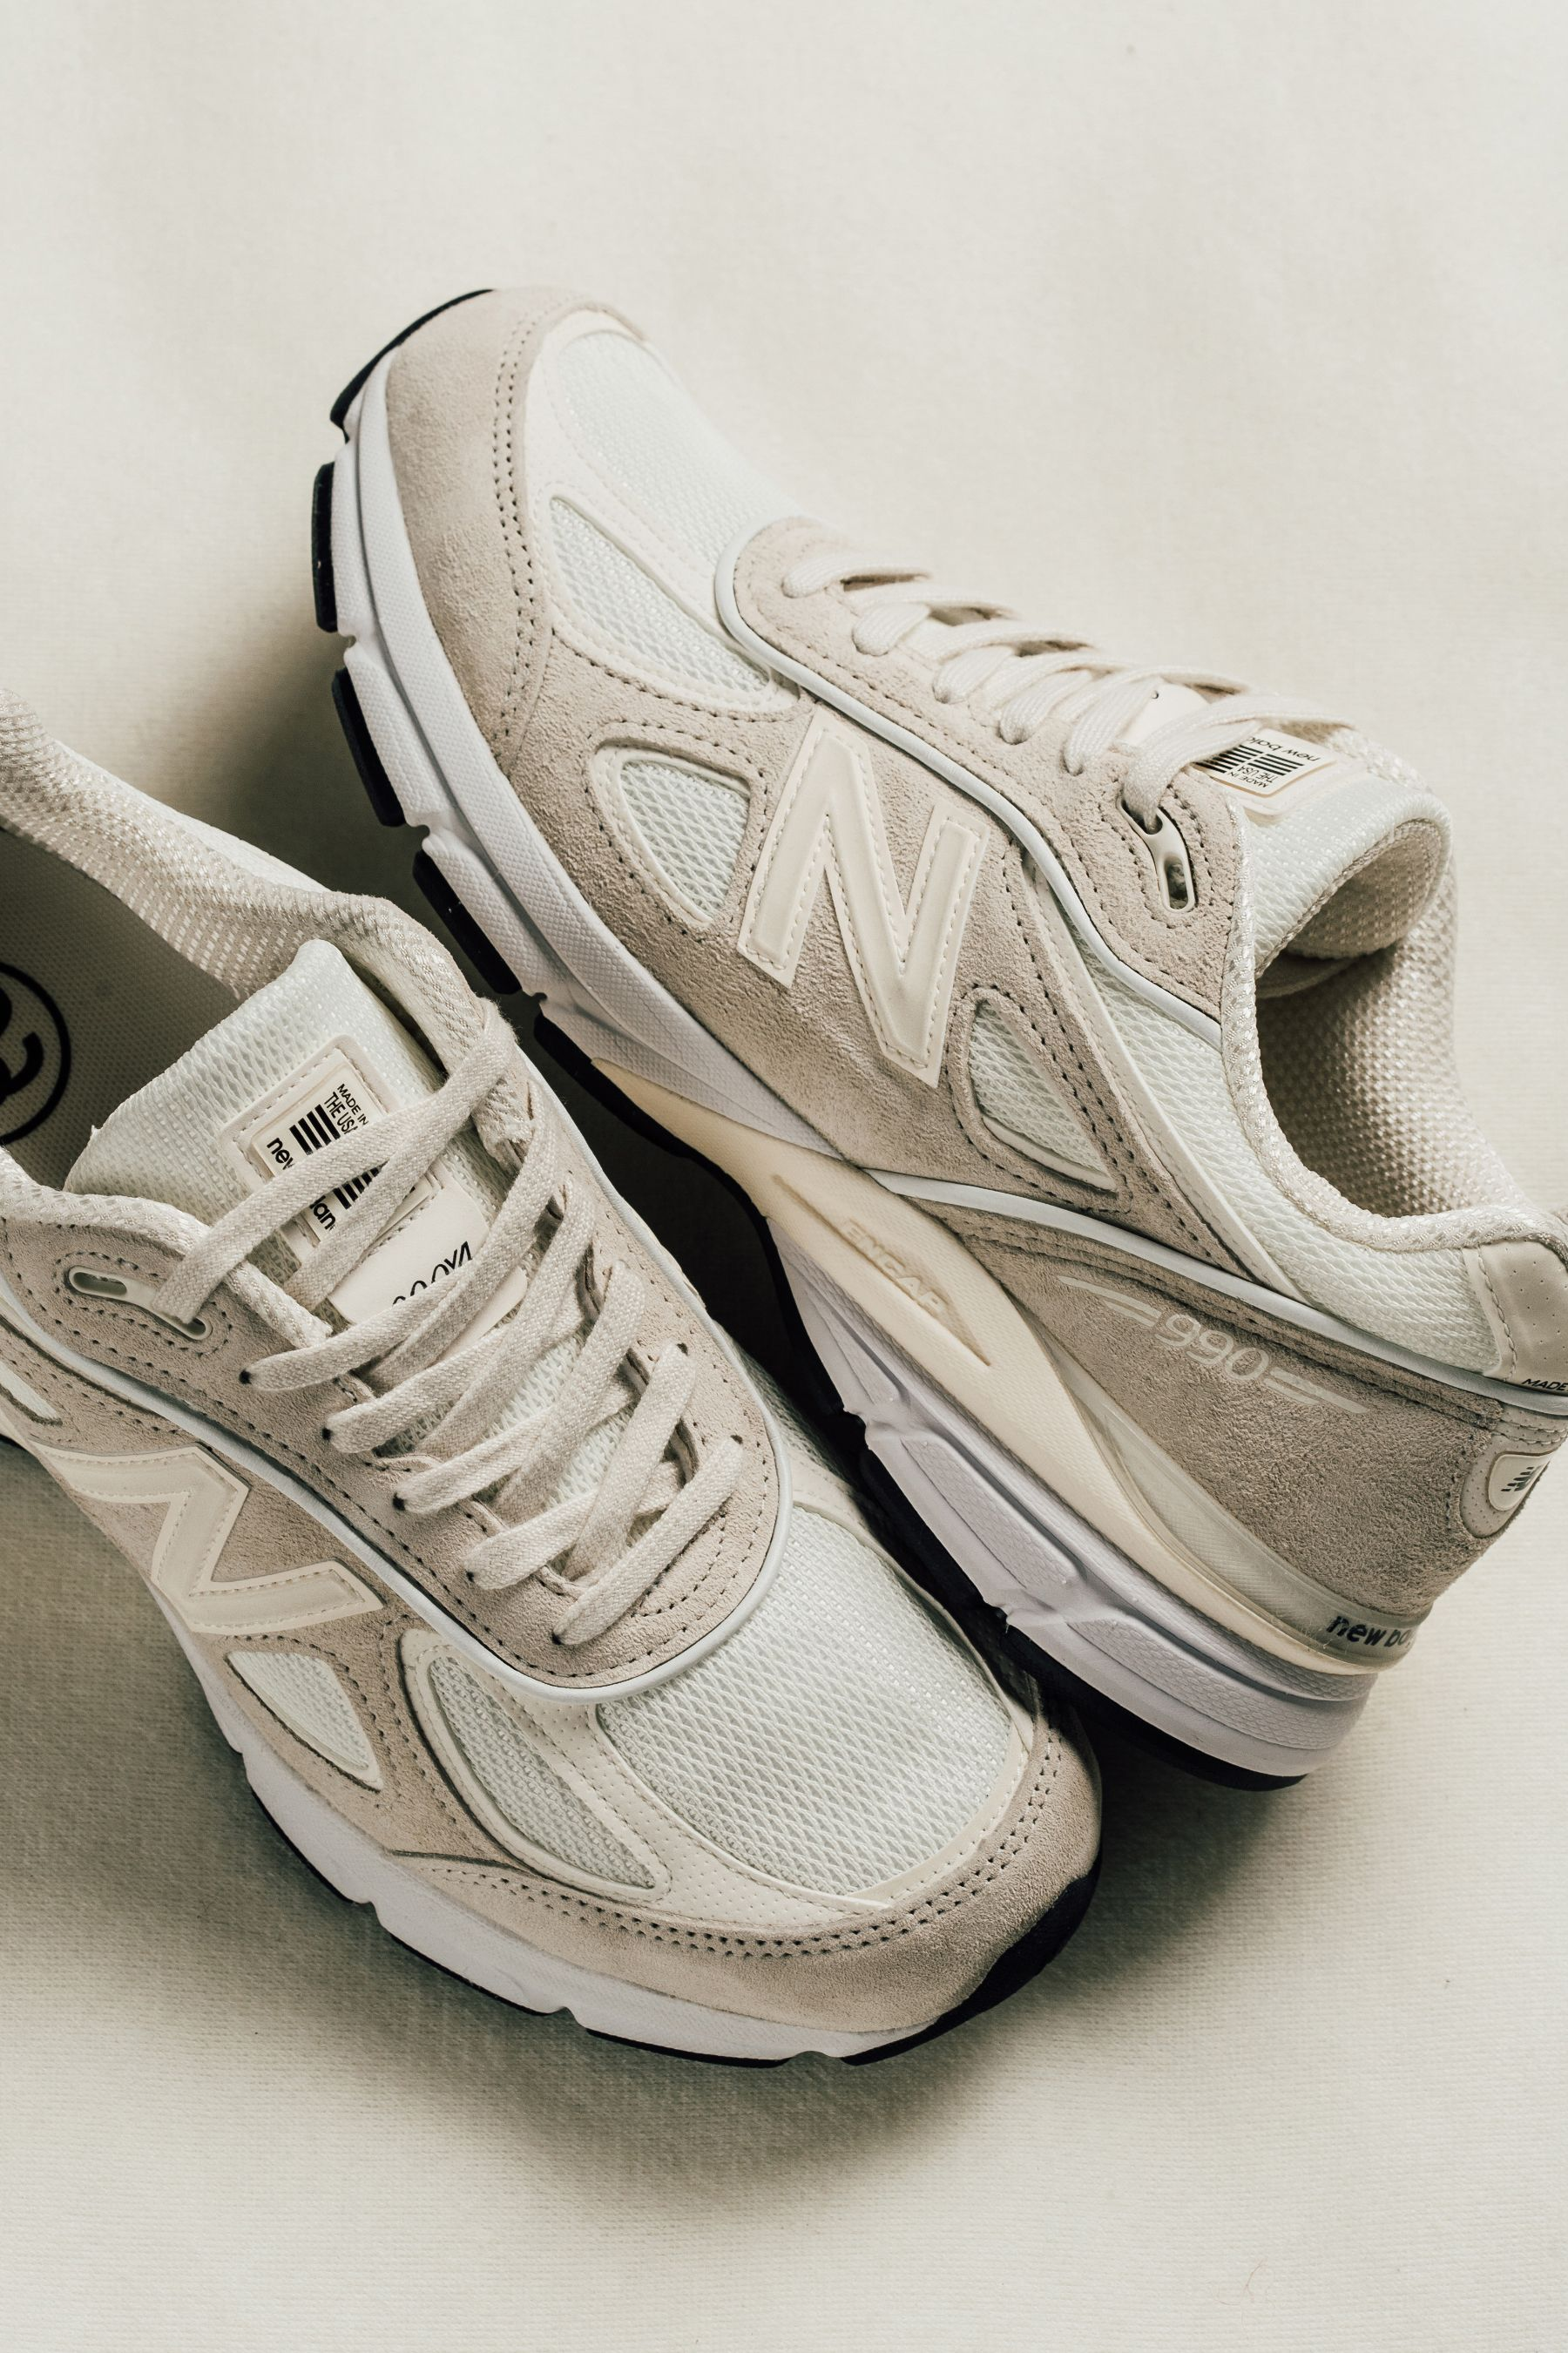 New Balance x Stussy 990v4 | Dad shoes, Womens sneakers ...